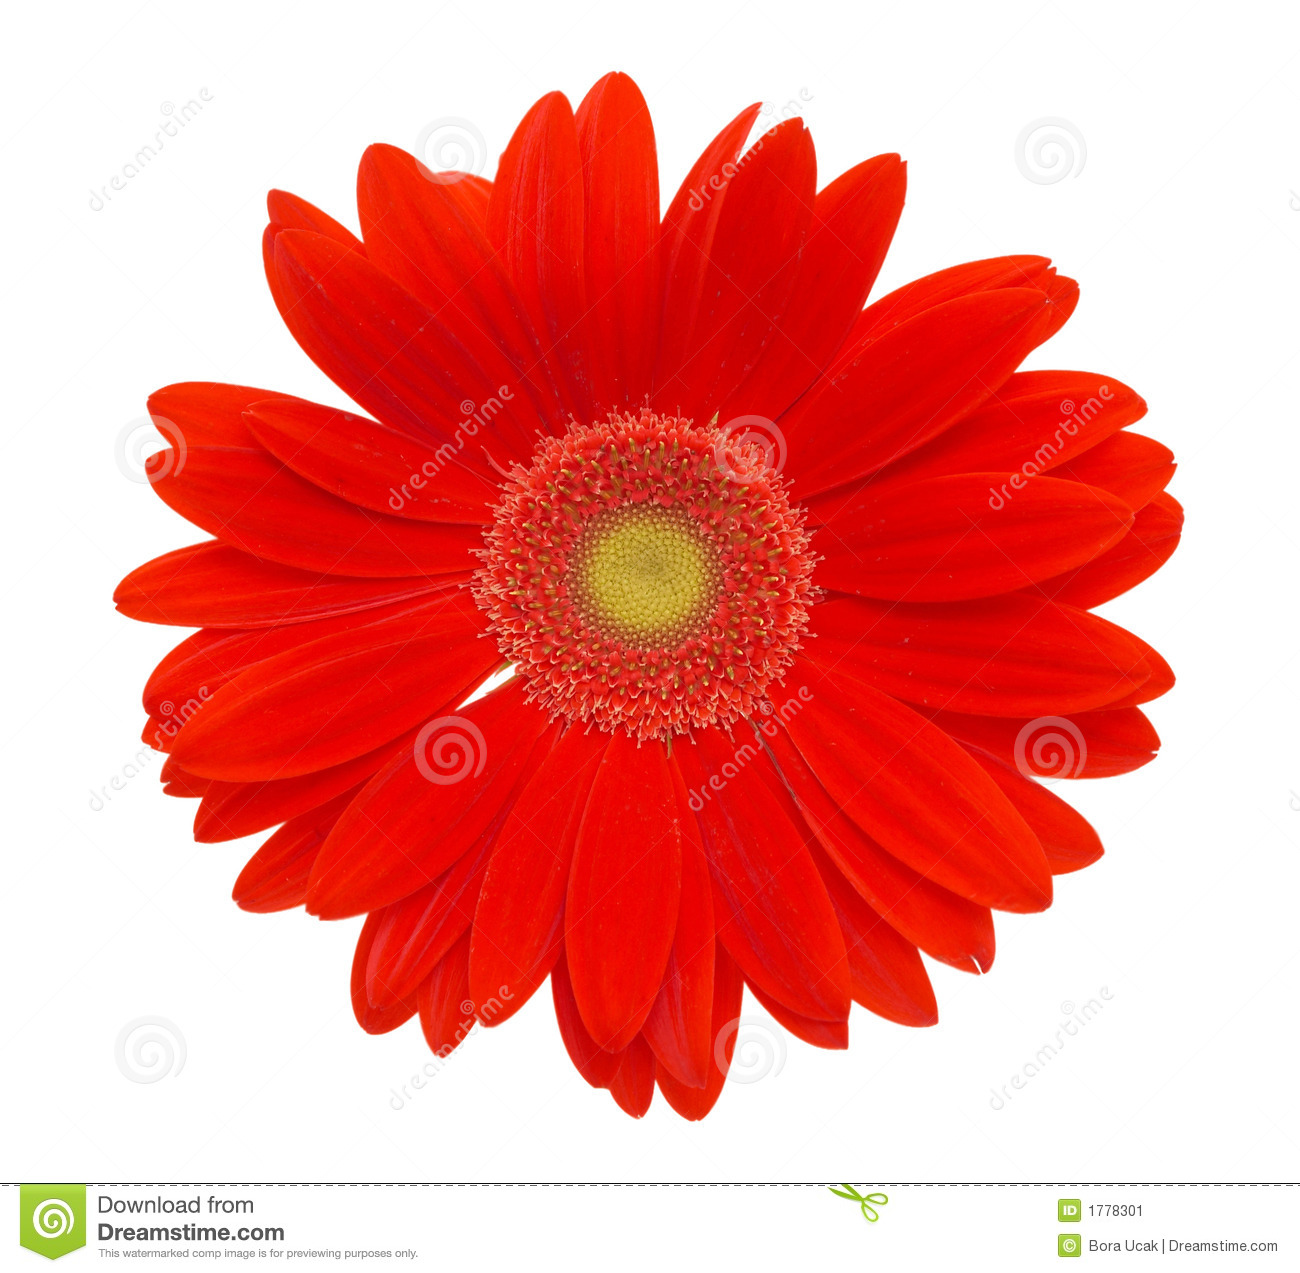 red daisy flower stock image  image, Natural flower